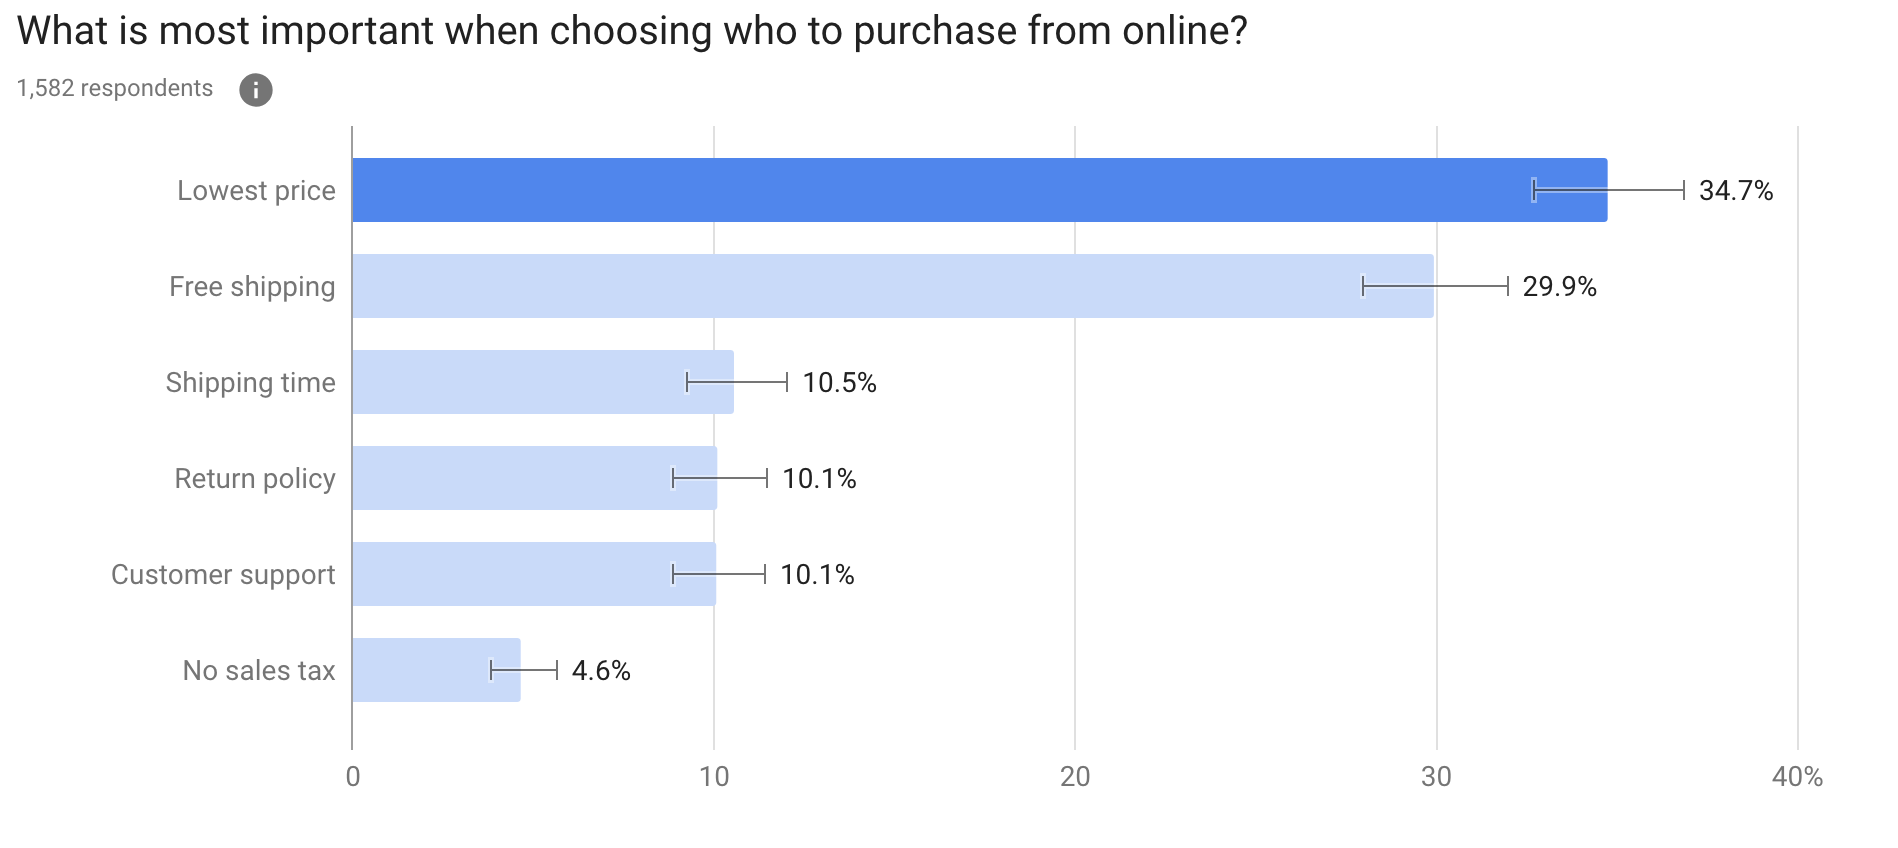 What is most important when choosing who to purchase from online?